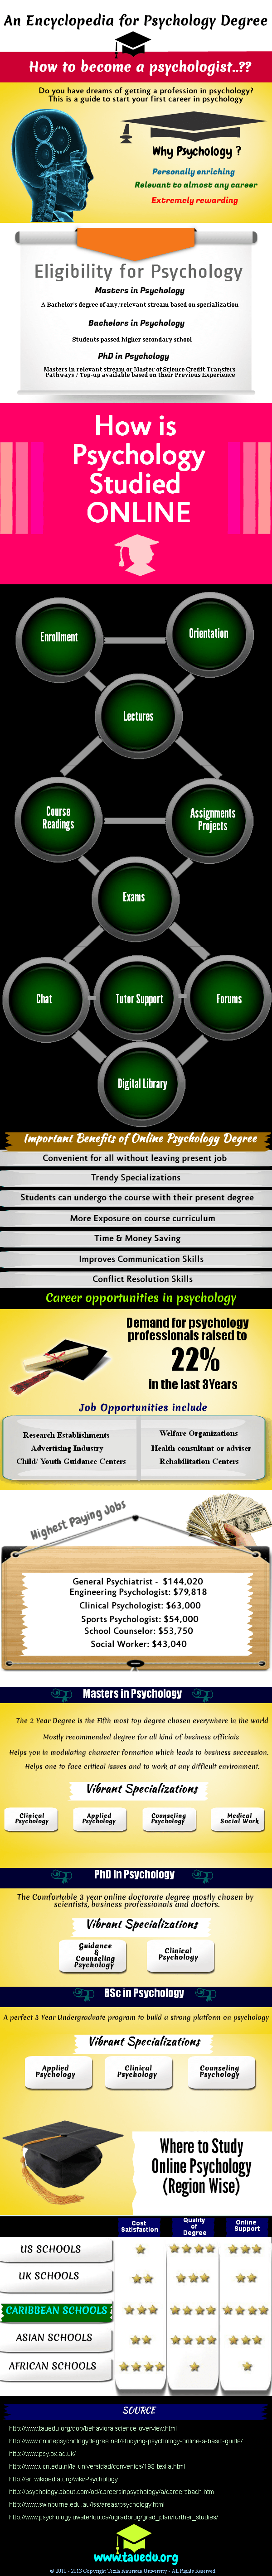 online-psychology-degree